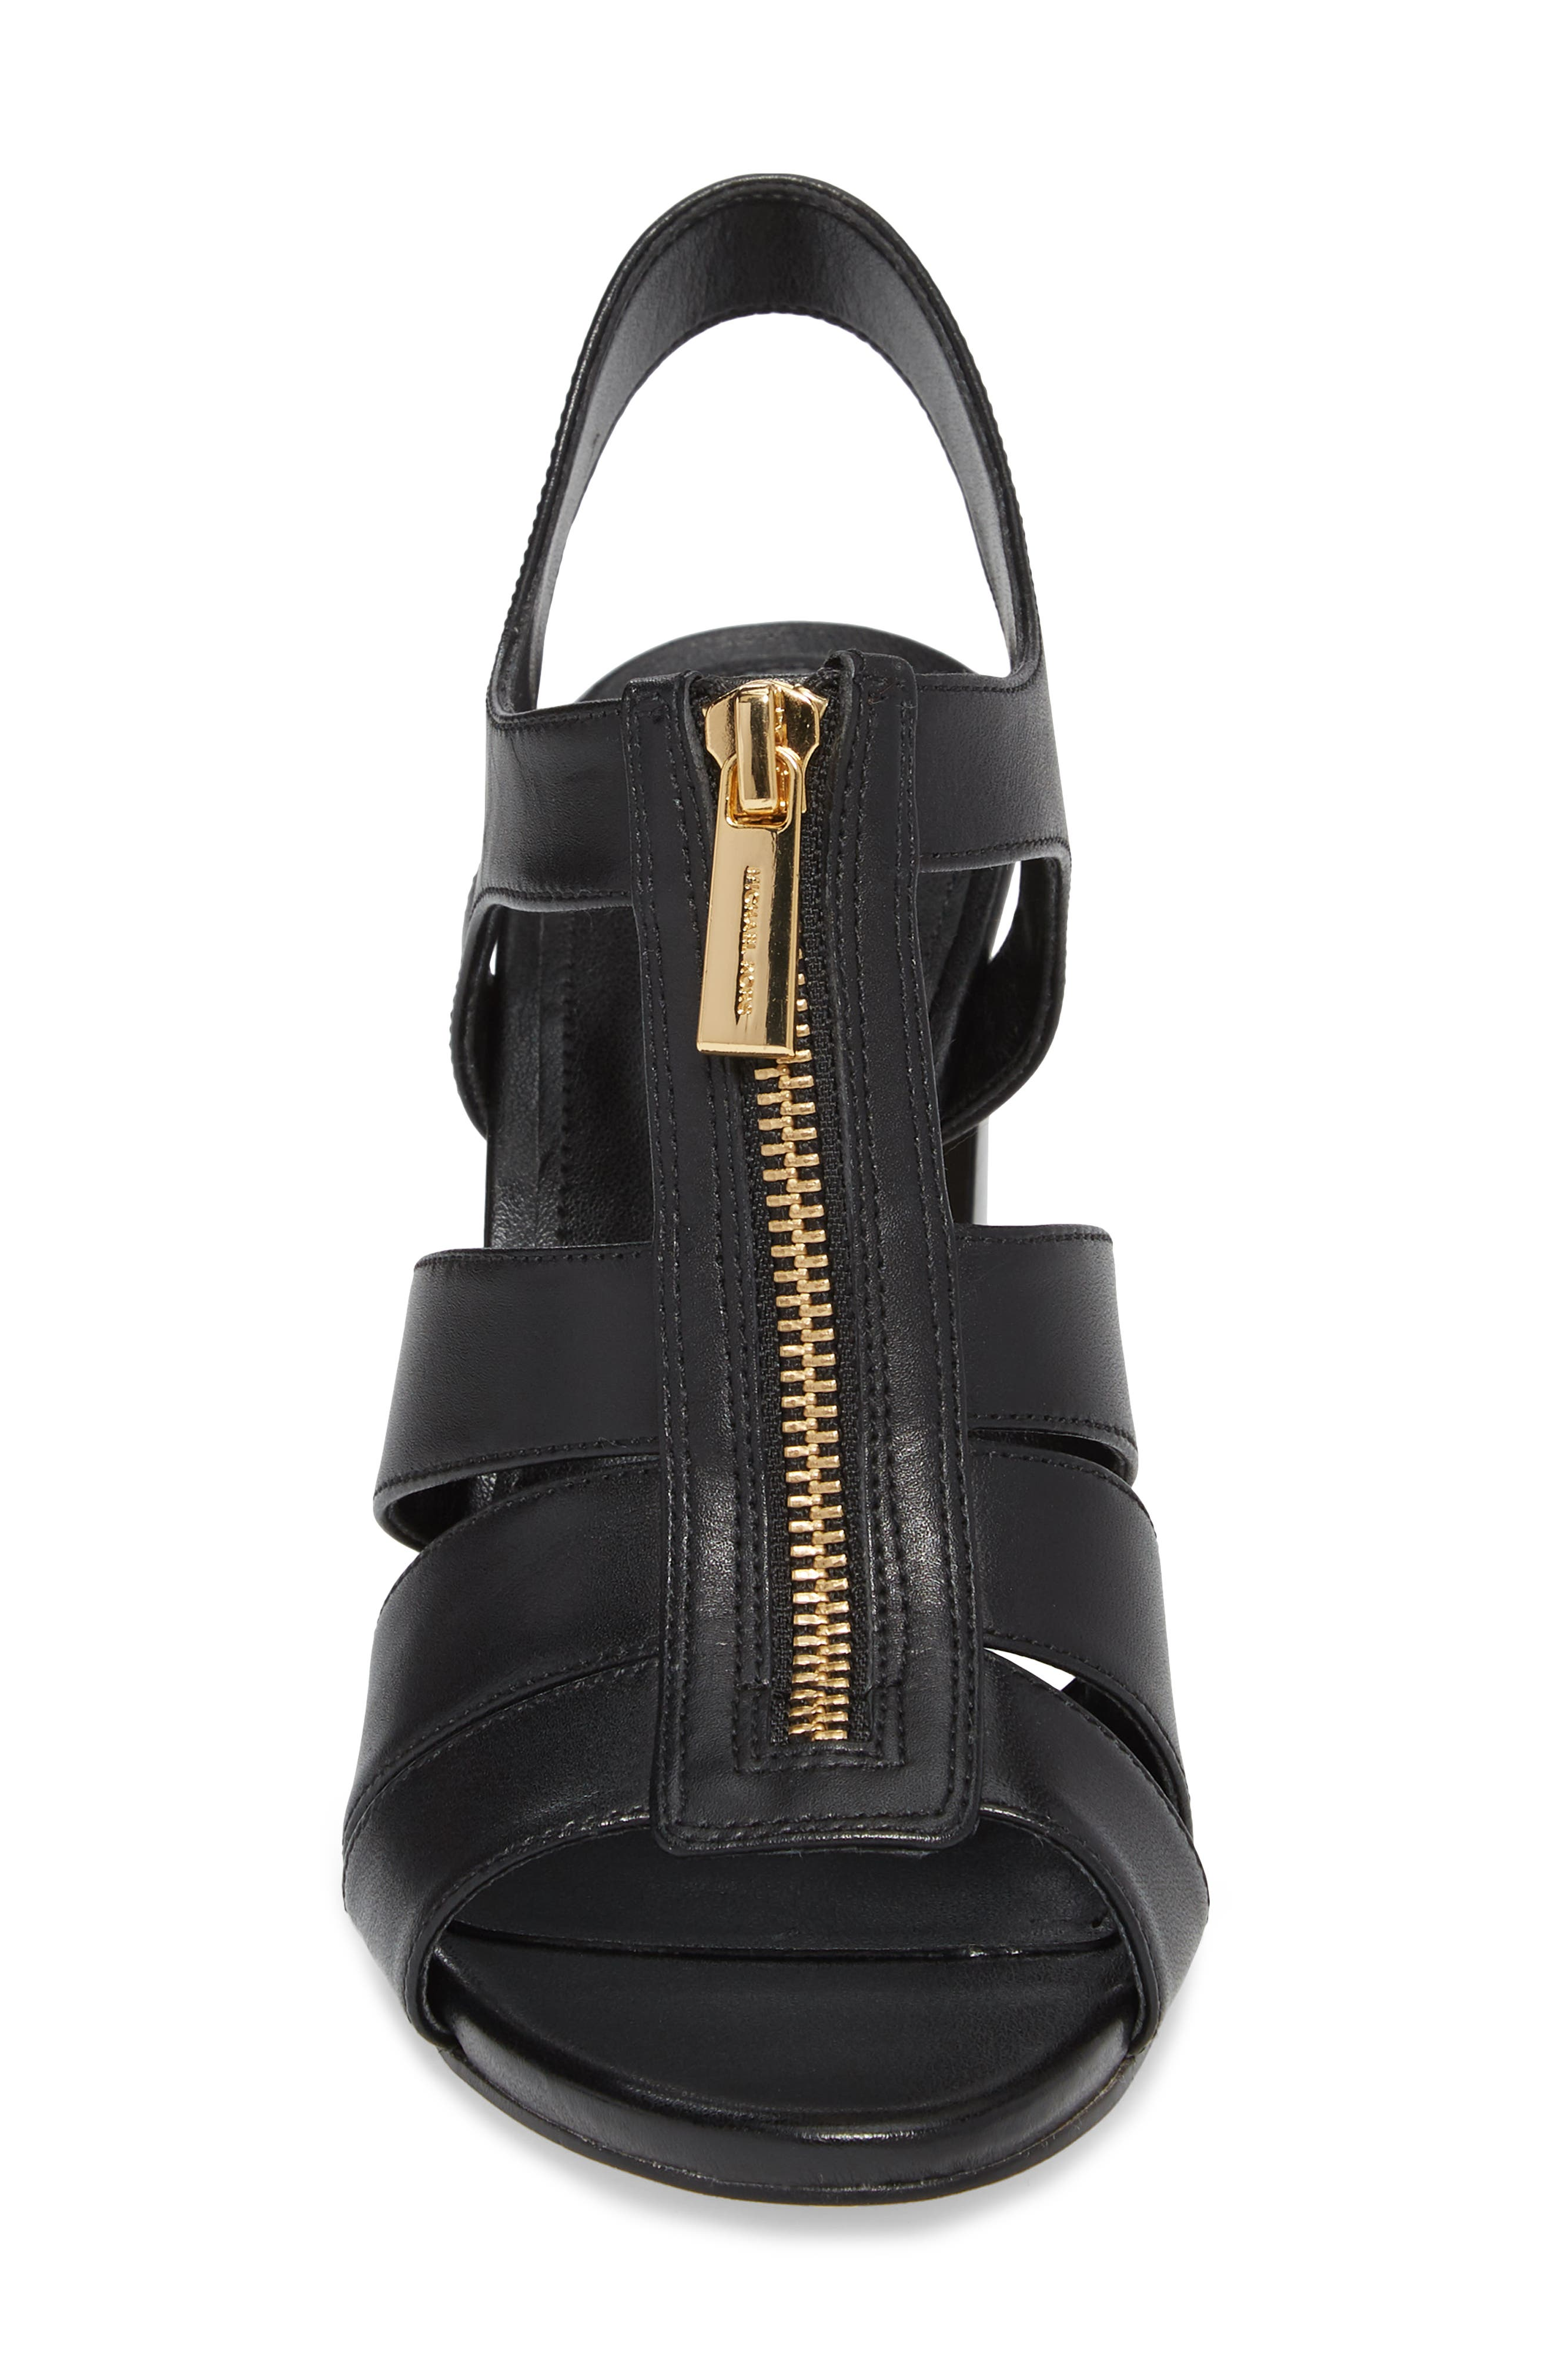 Damita Sandal,                             Alternate thumbnail 4, color,                             Black